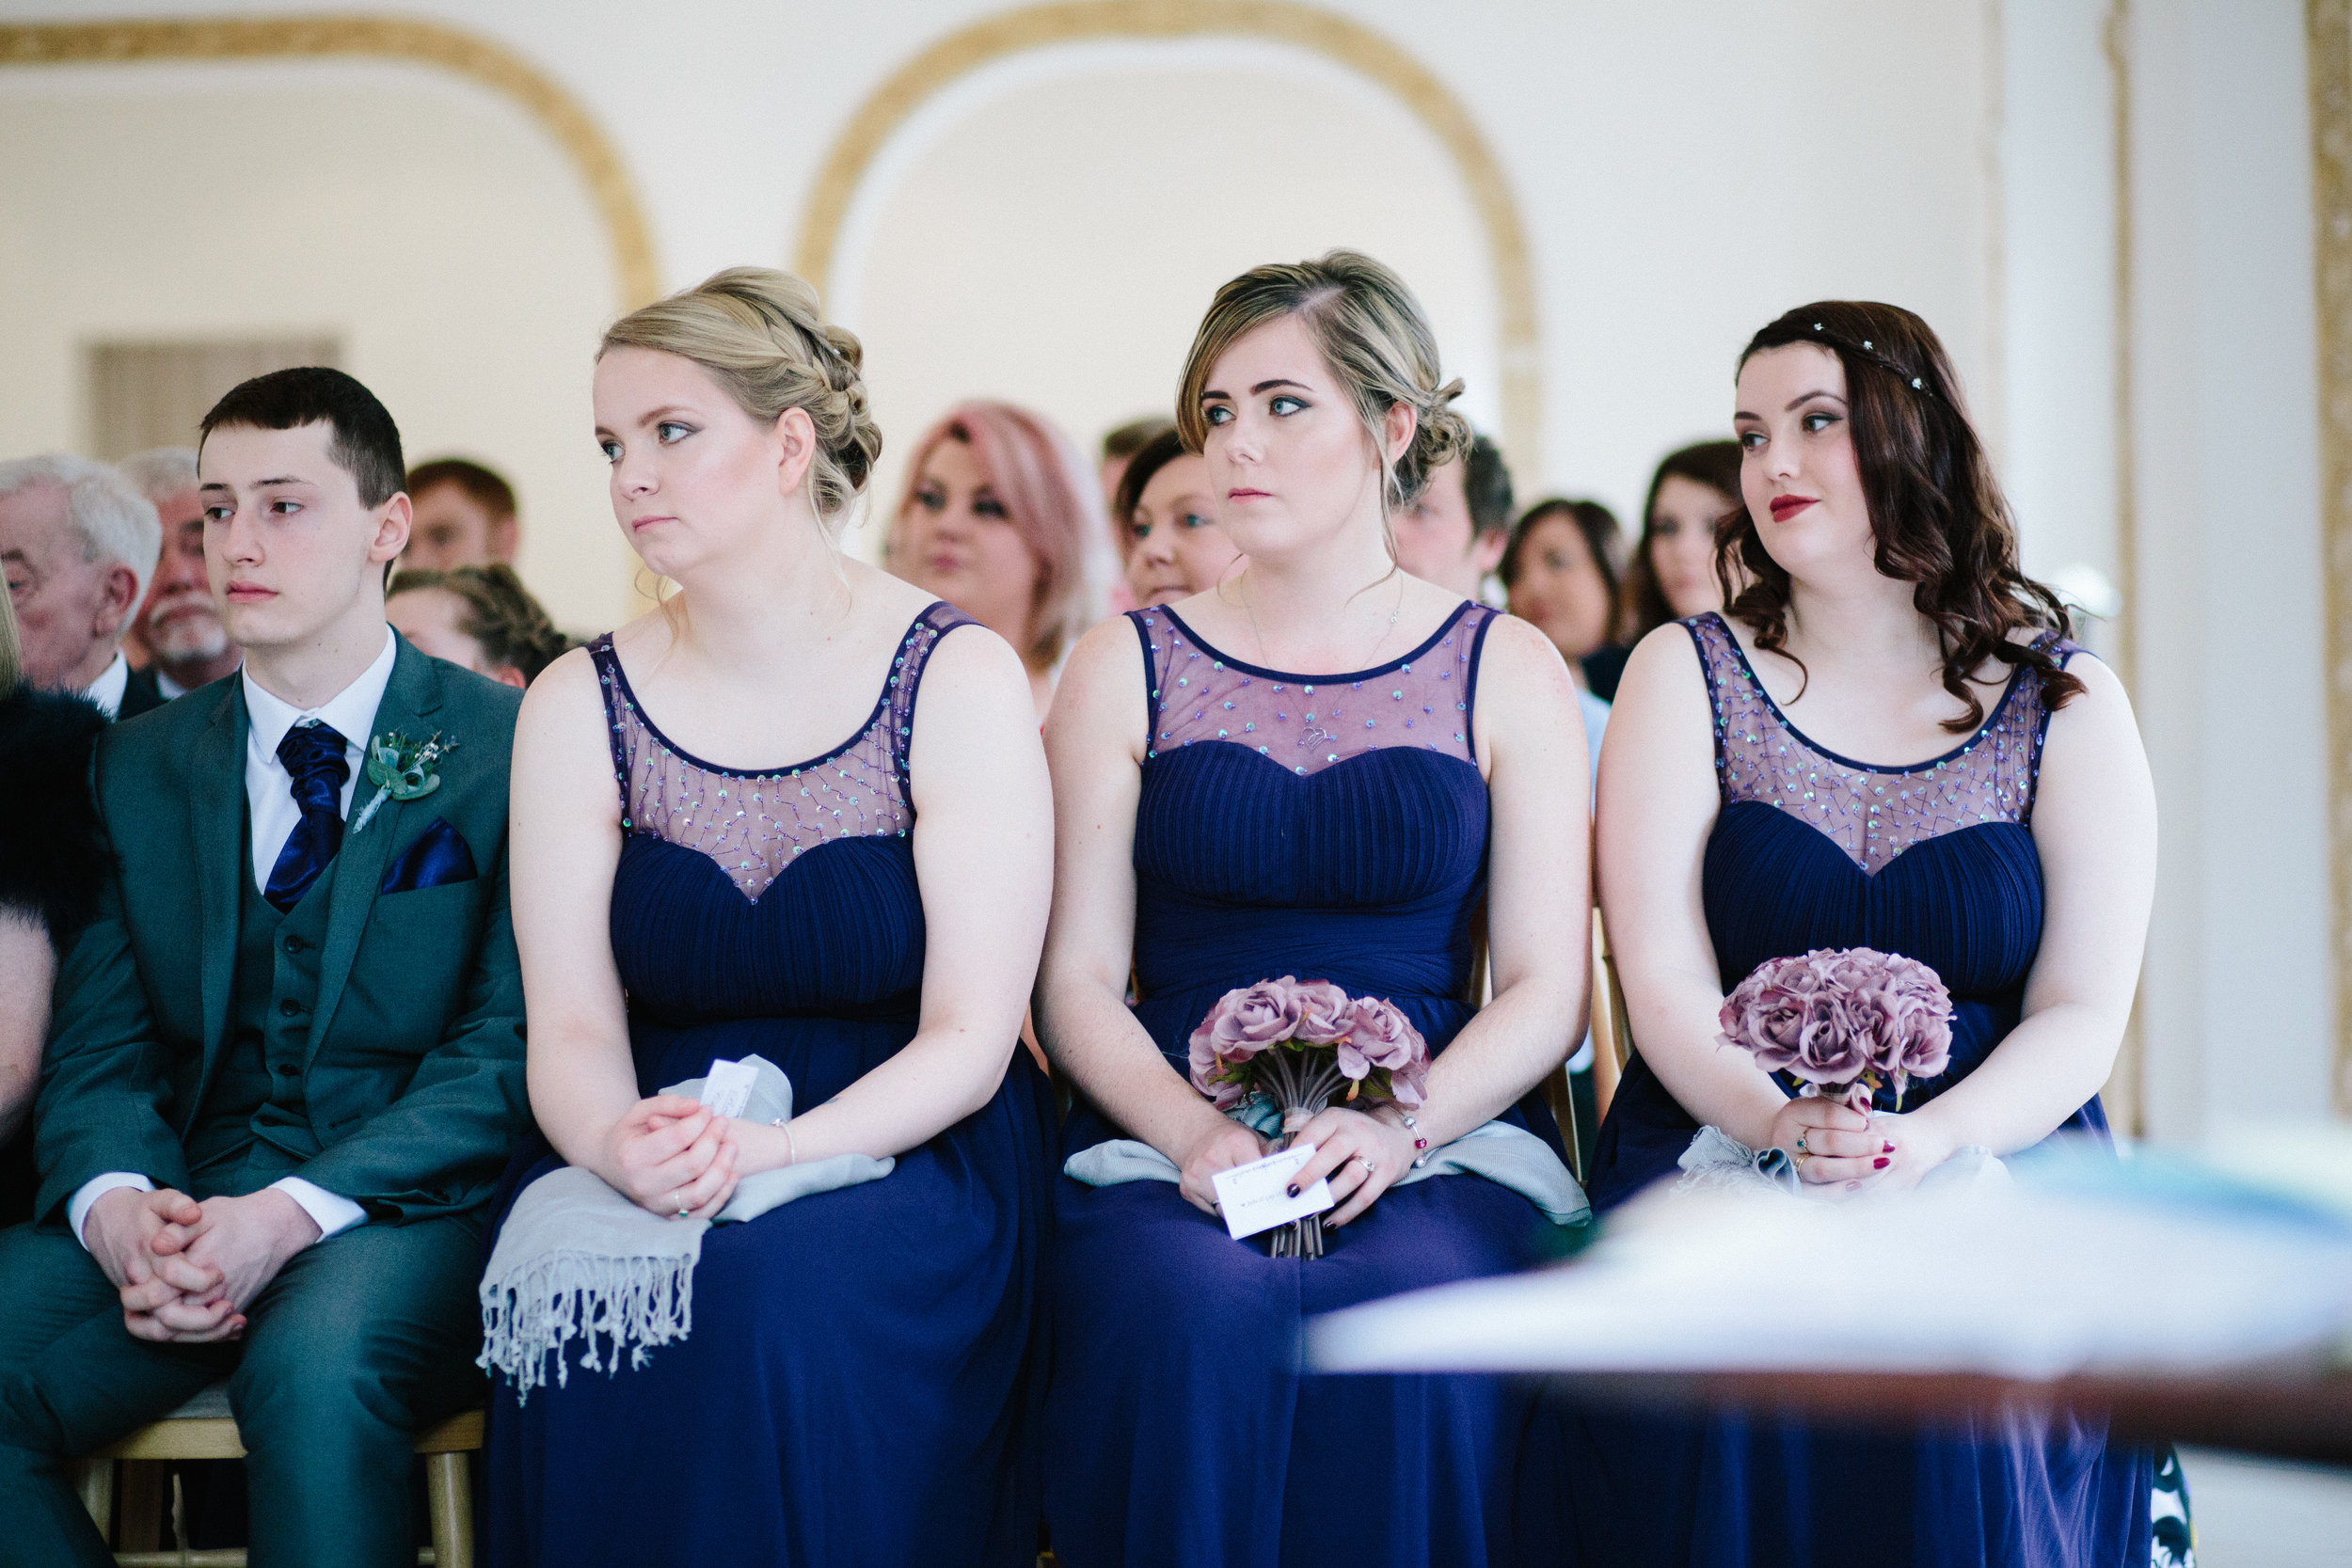 northbrook-park-farnham-hampshire-winter-spring-wedding-photography-bridesmaids-20